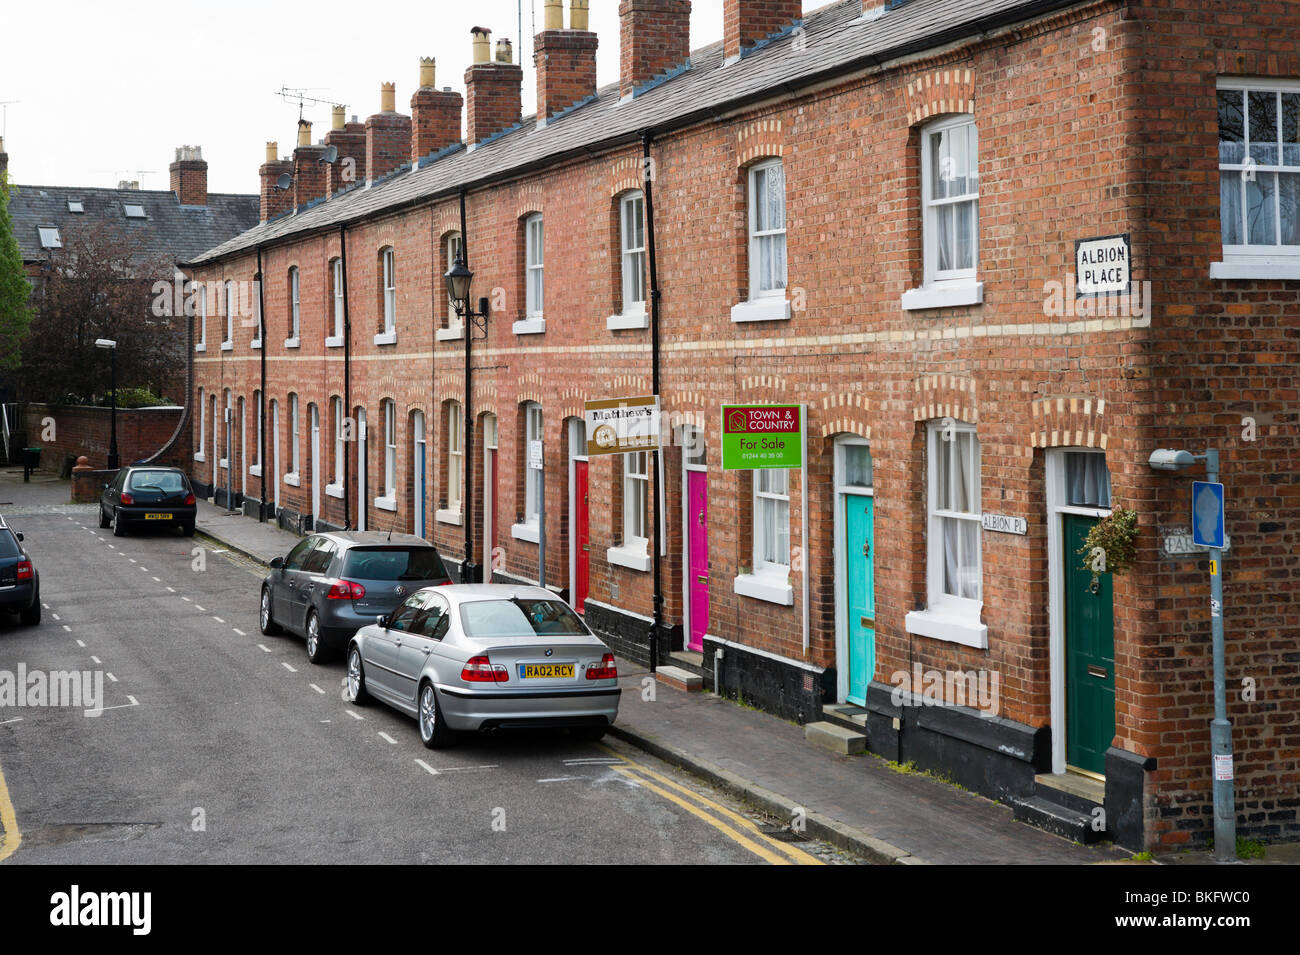 Terraced houses, Chester, Cheshire, England, UK - Stock Image